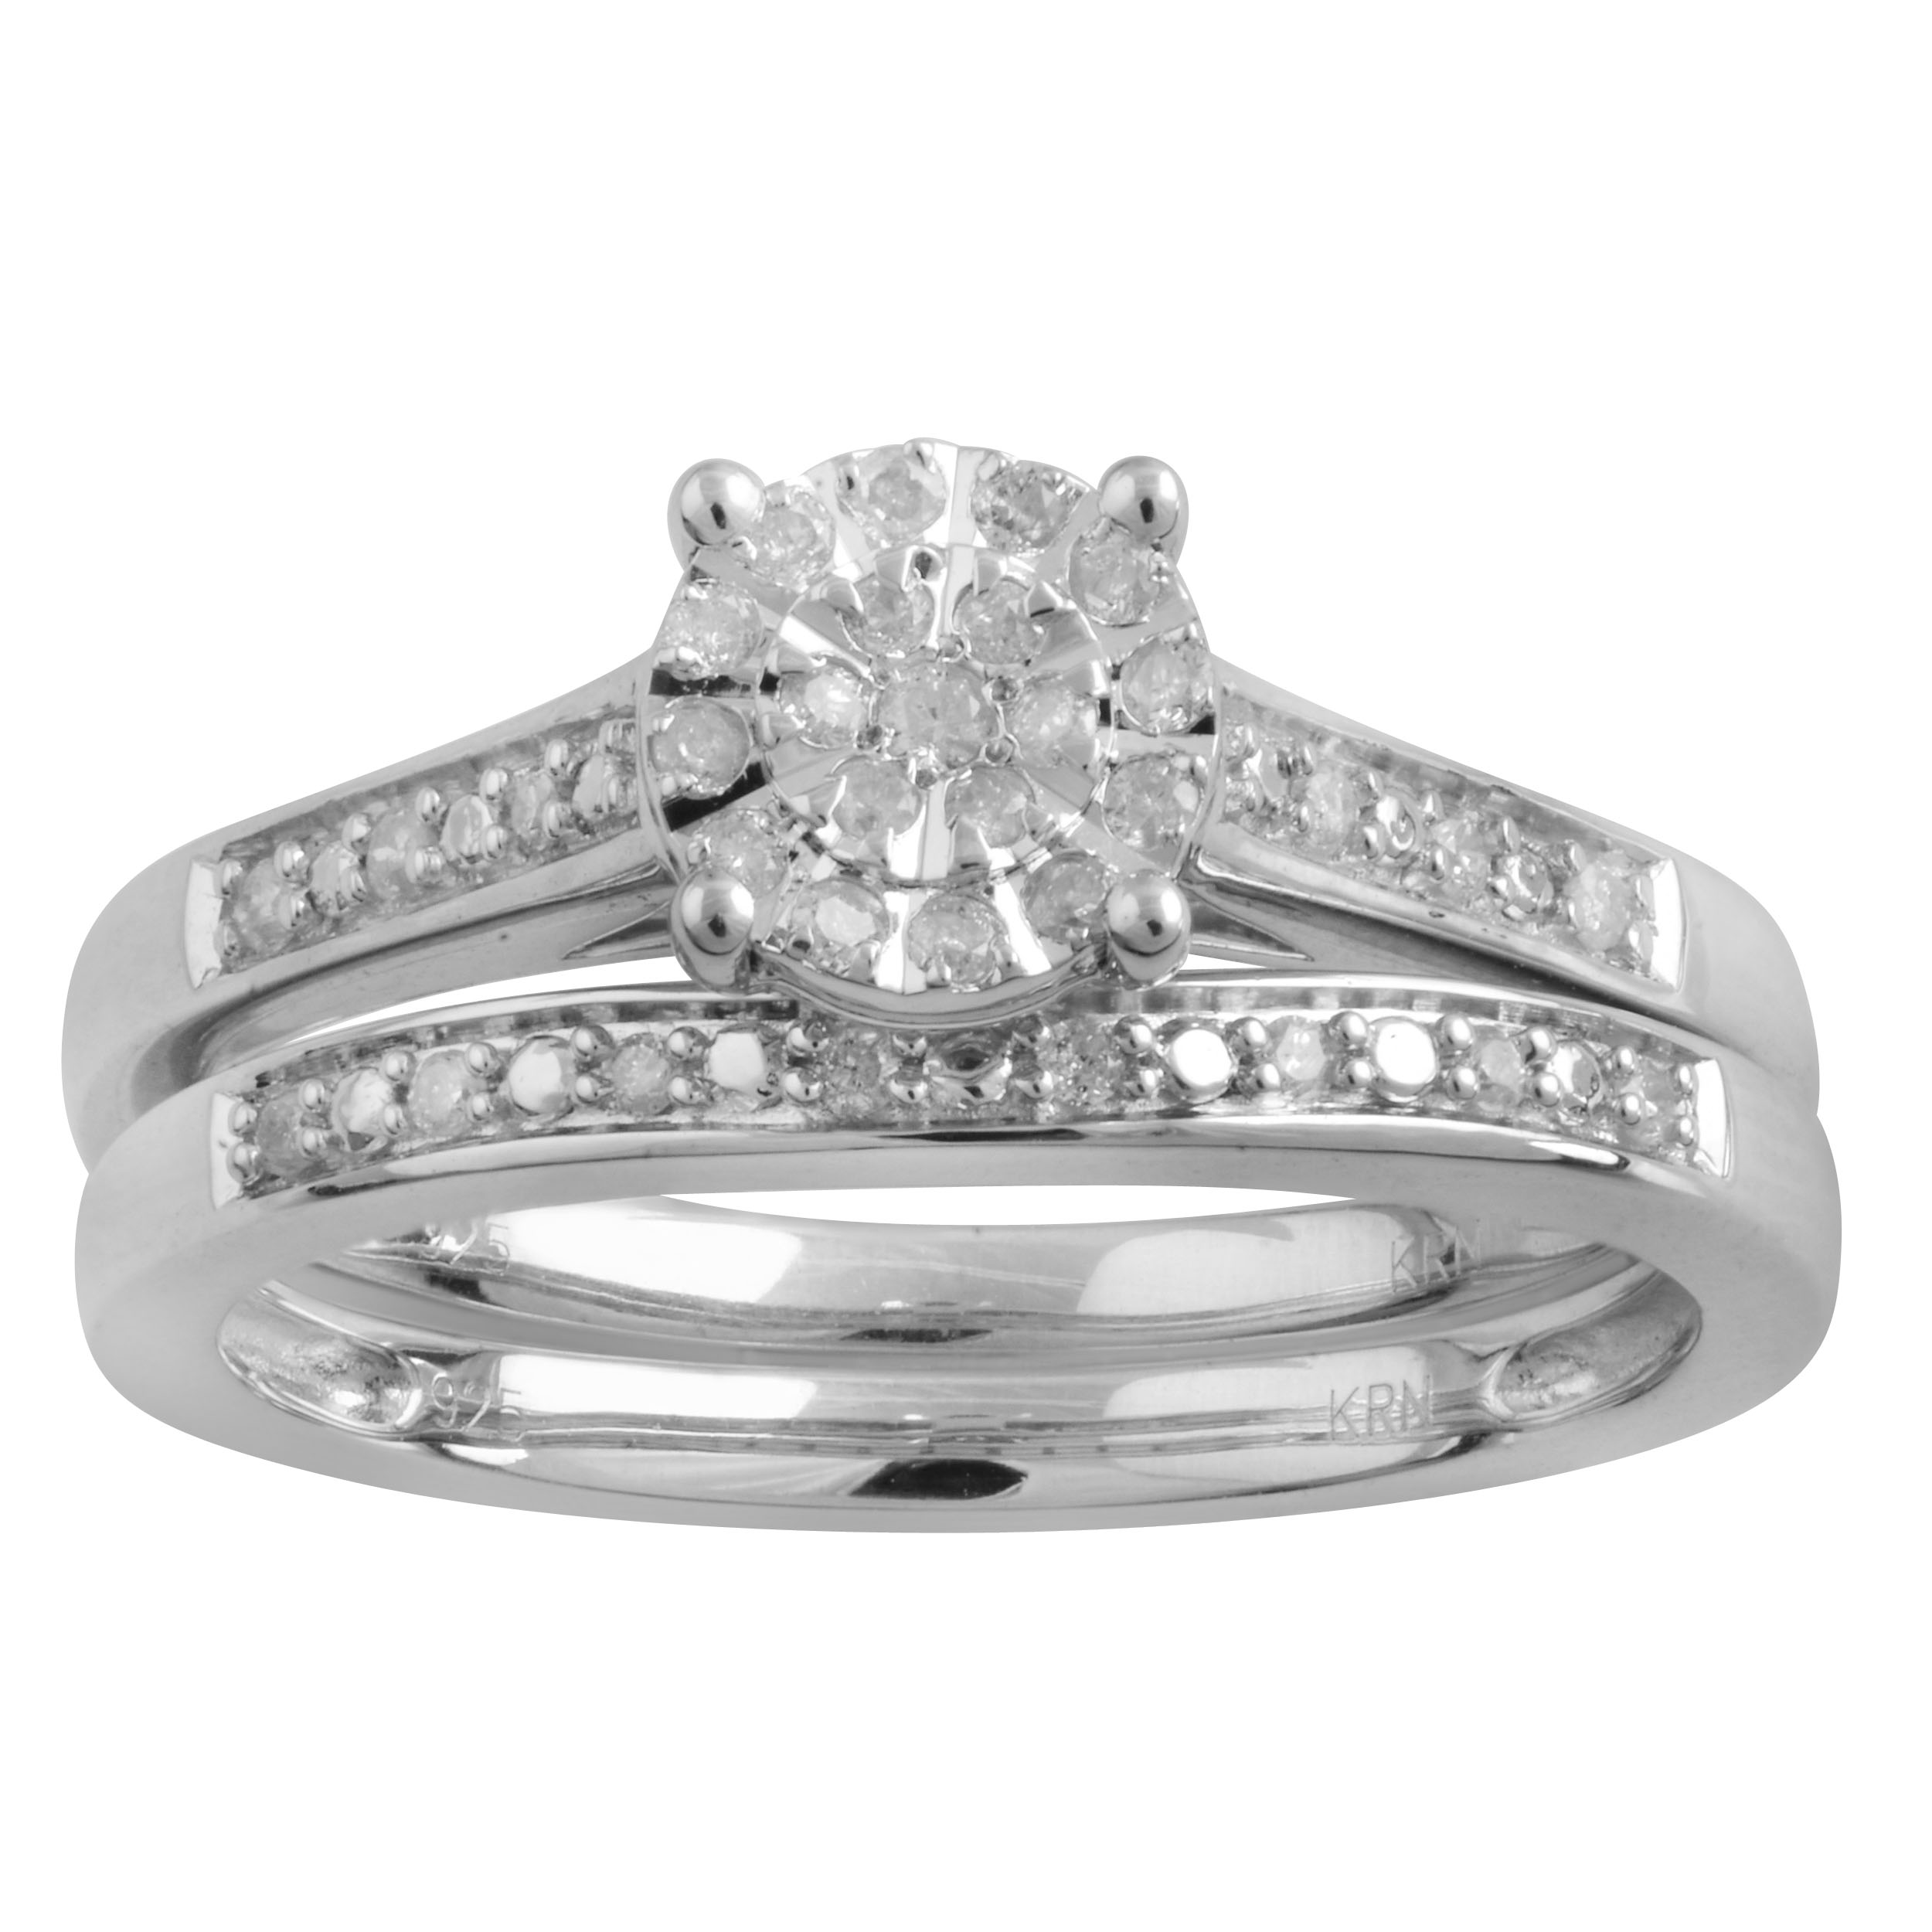 Sterling Silver 1/5 Carat Diamond Ring